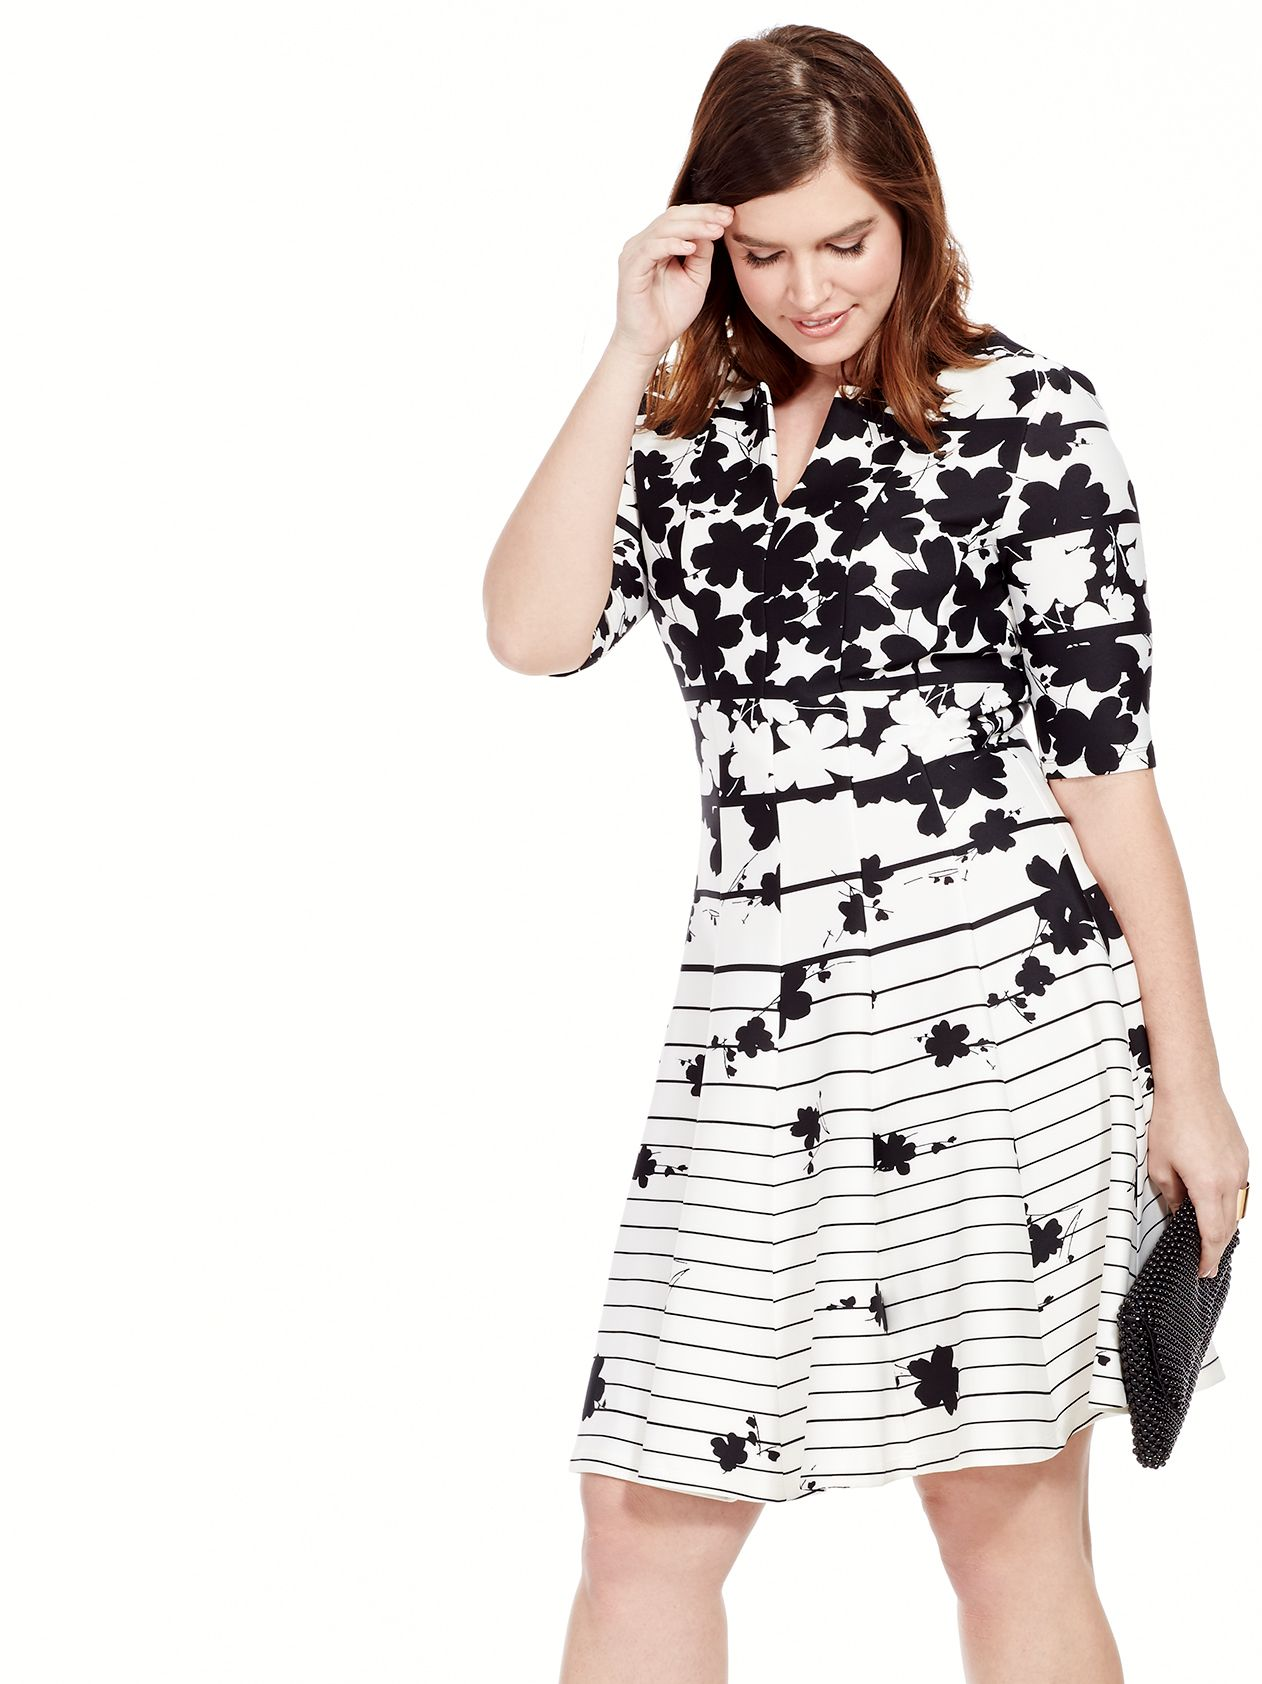 Black & White Dress In Mixed Print  by Julian Taylor  Available in sizes 10/12 and 14W-24W